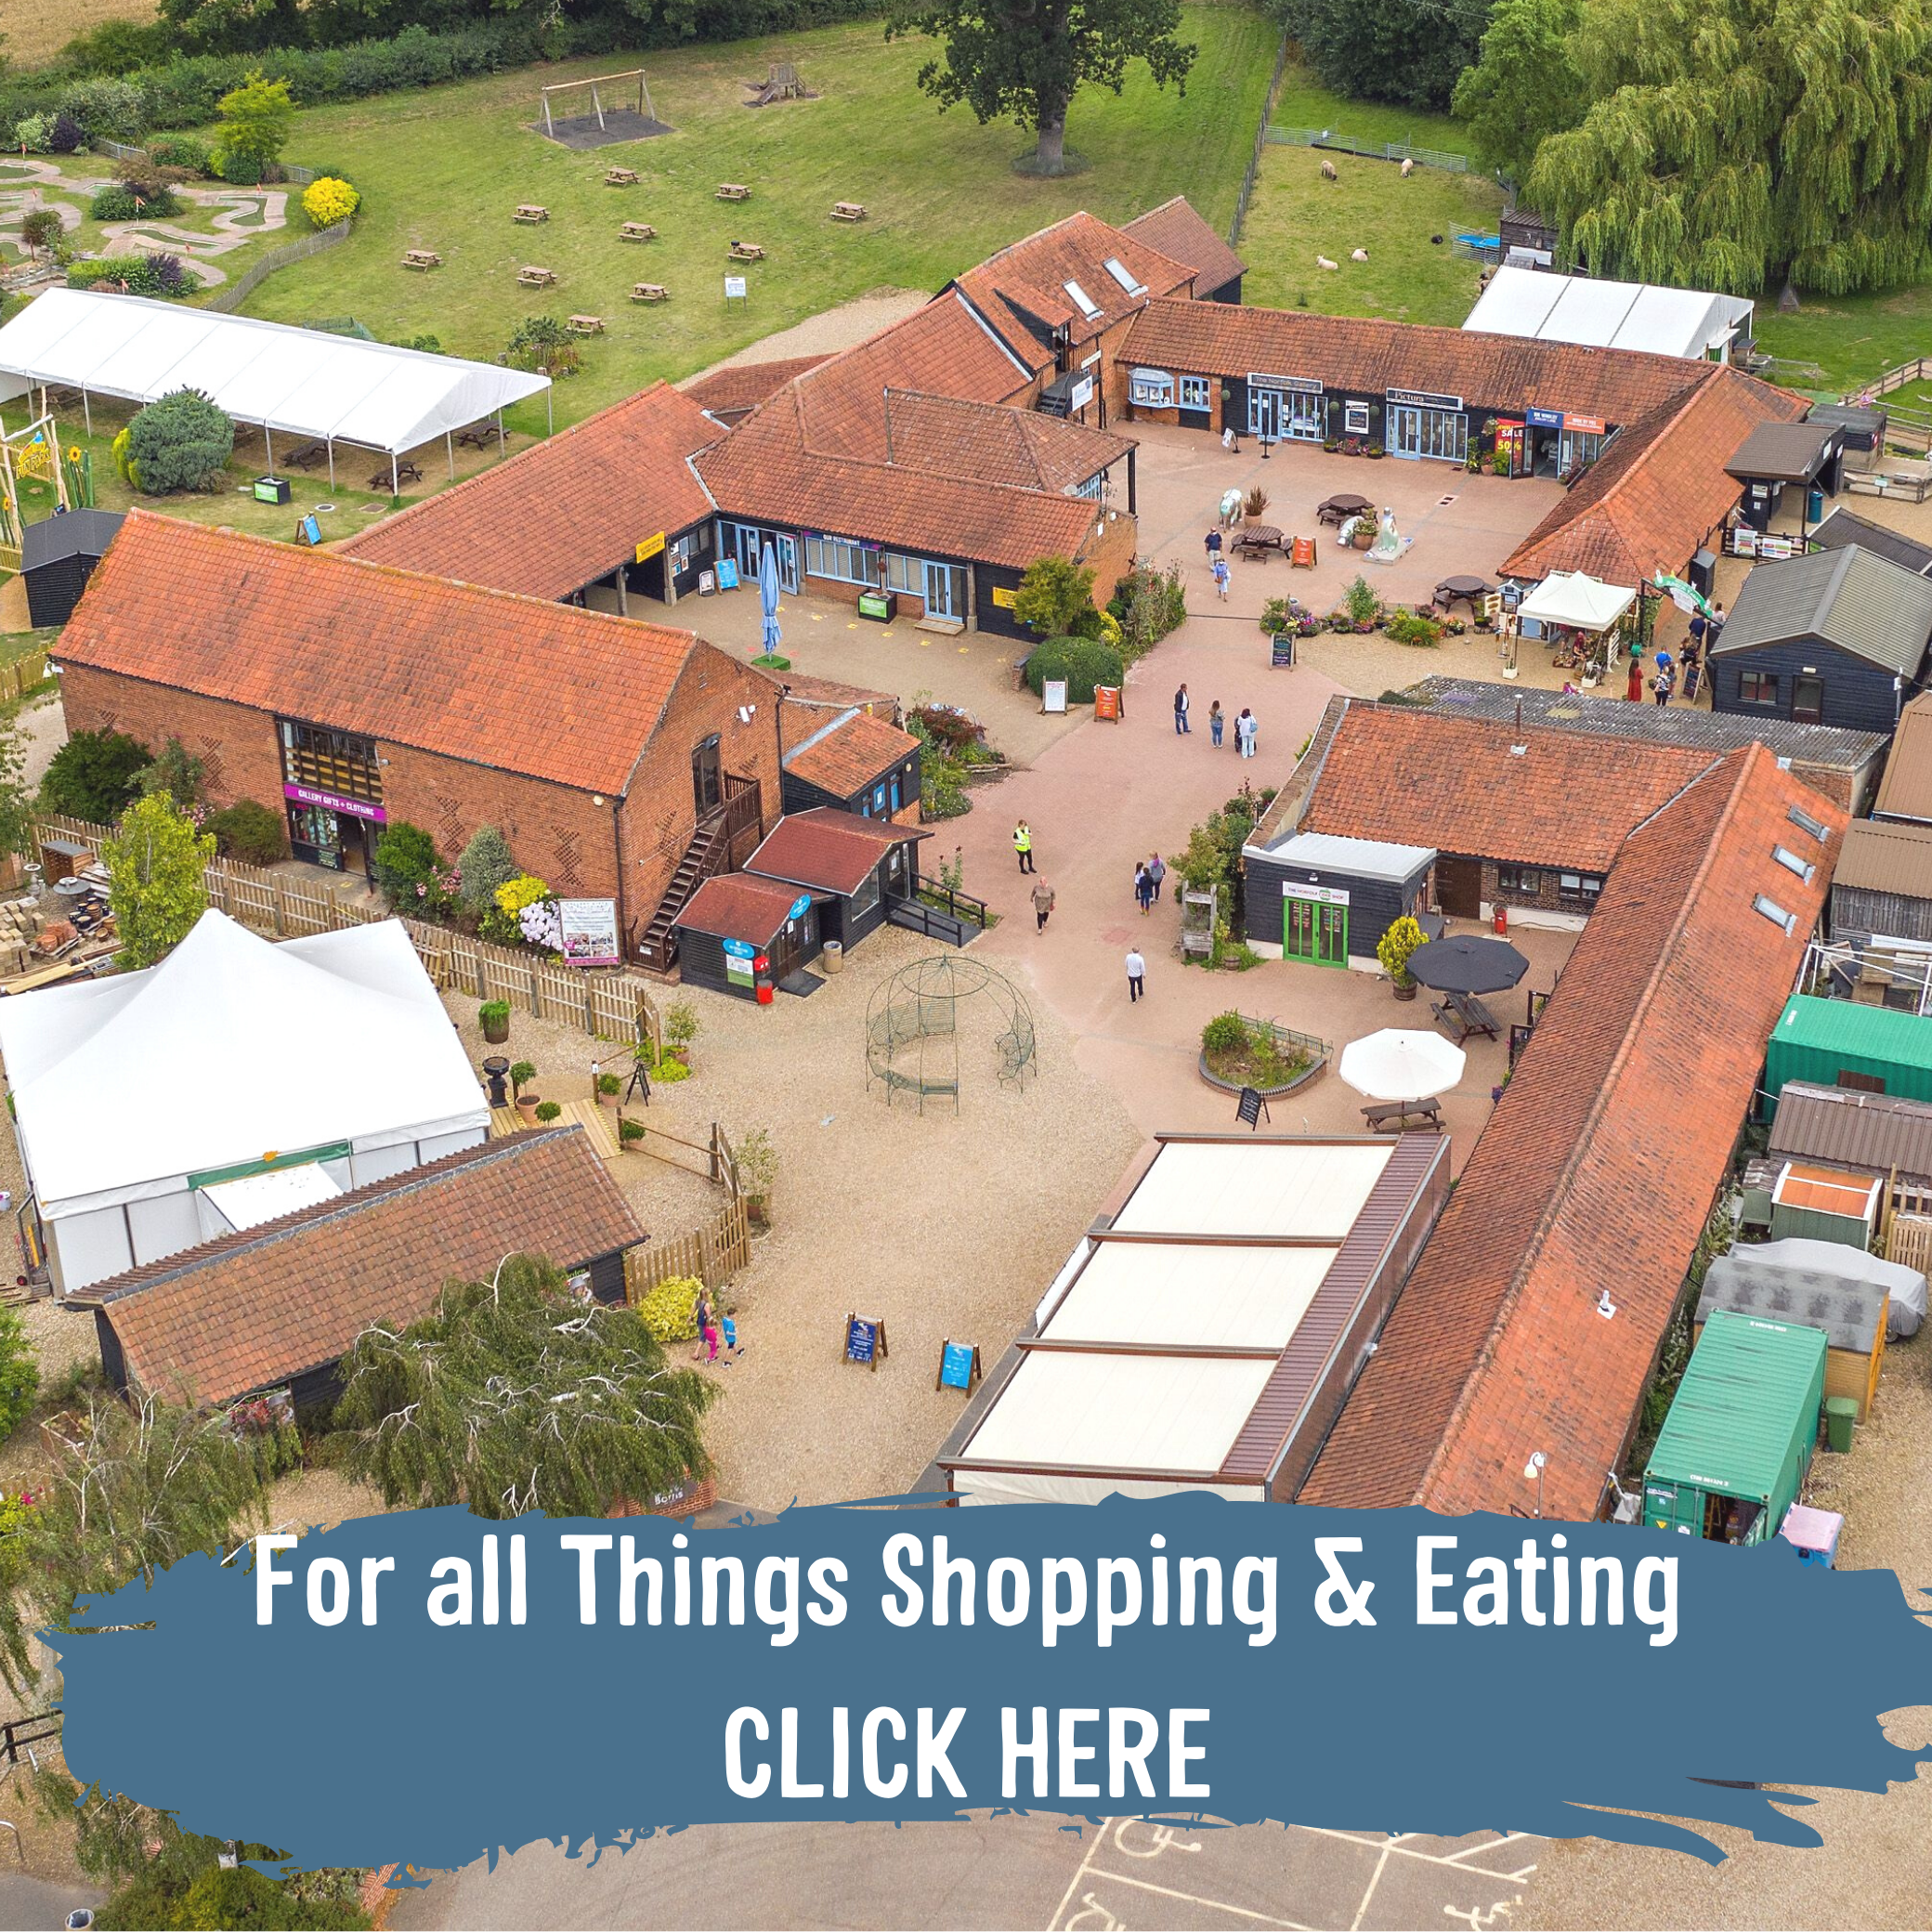 Wroxham Barns - Shopping & Eating